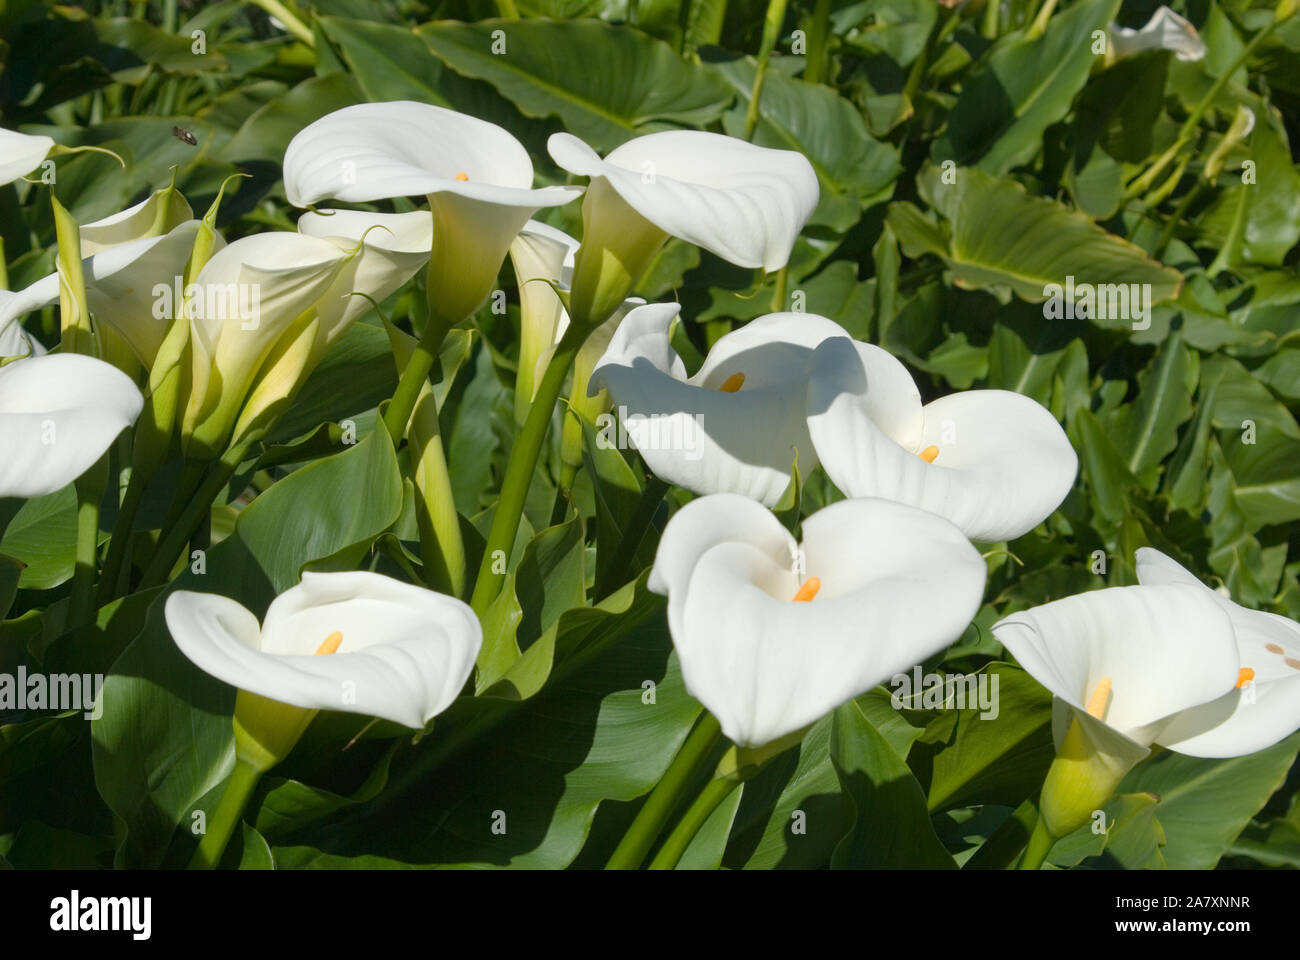 Zantedeschia Aethiopica Known As Calla Lily And Arum Lily Is A